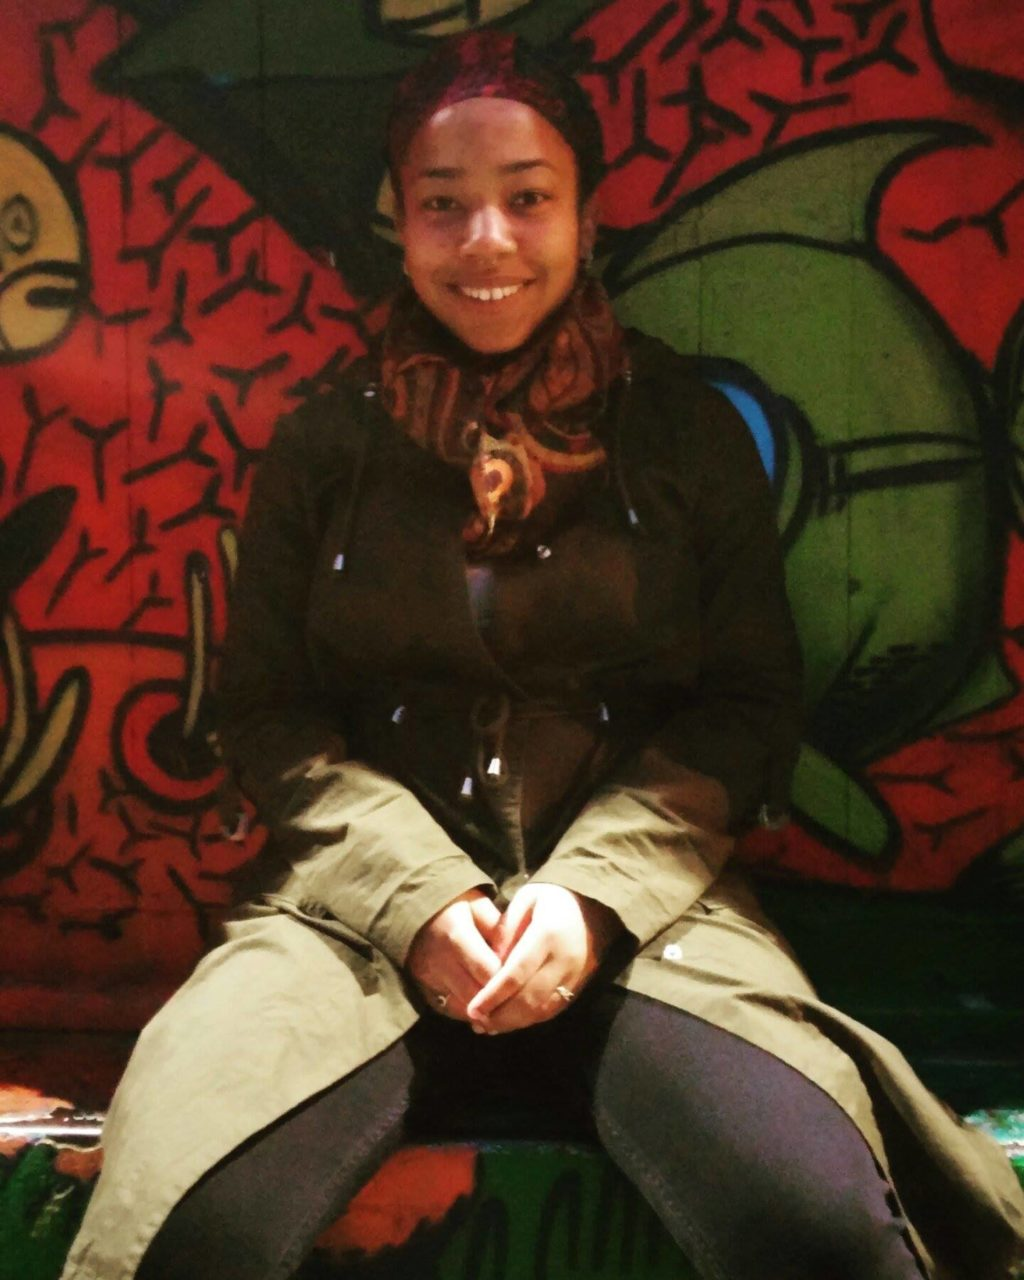 Jade posed and smiling in front of a graffiti wall.